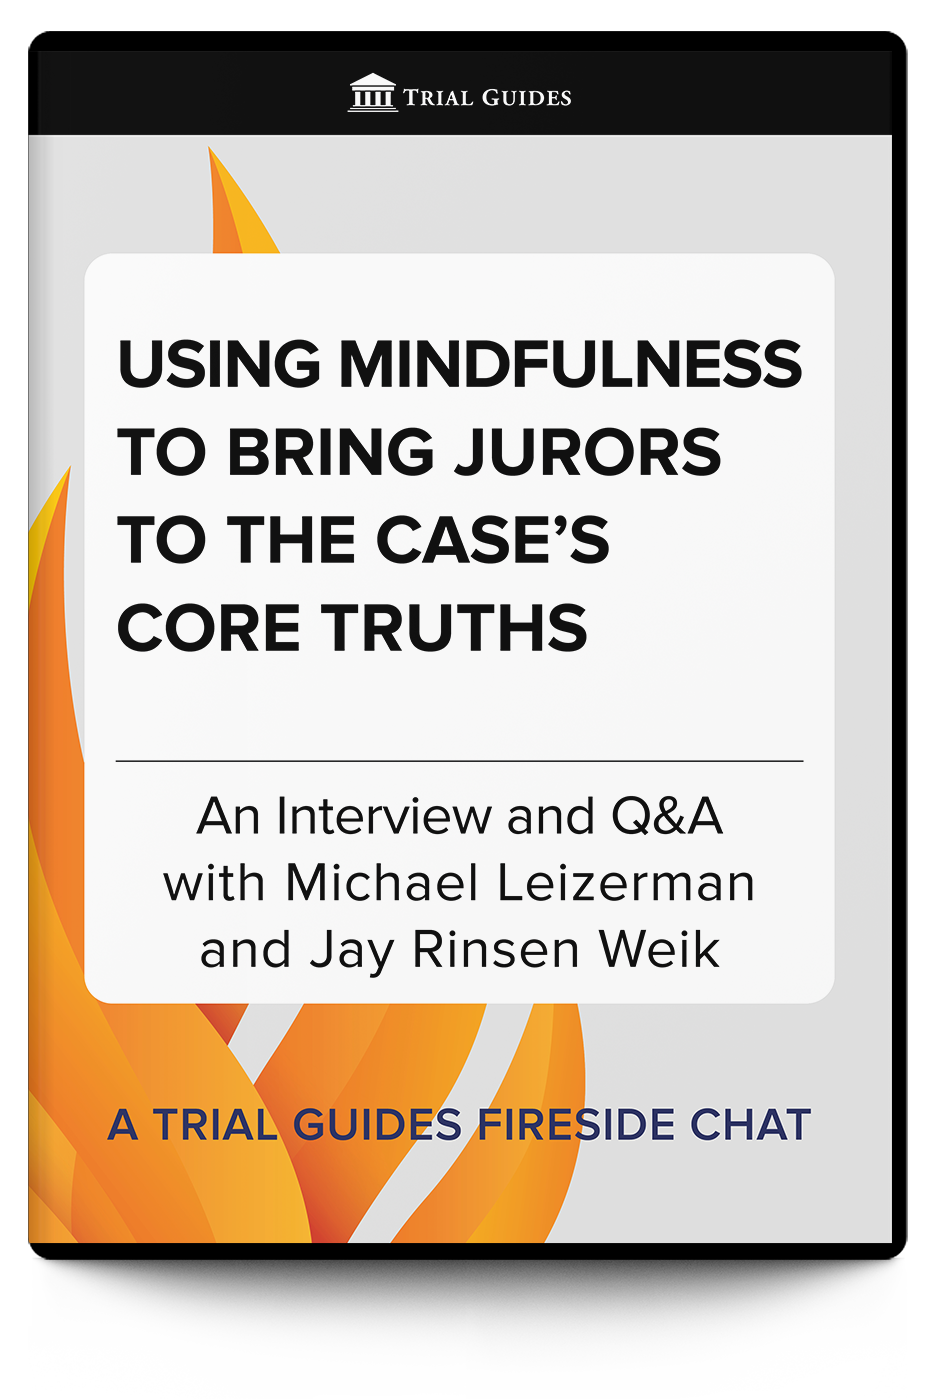 Using Mindfulness to Bring Jurors to the Case's Core Truths